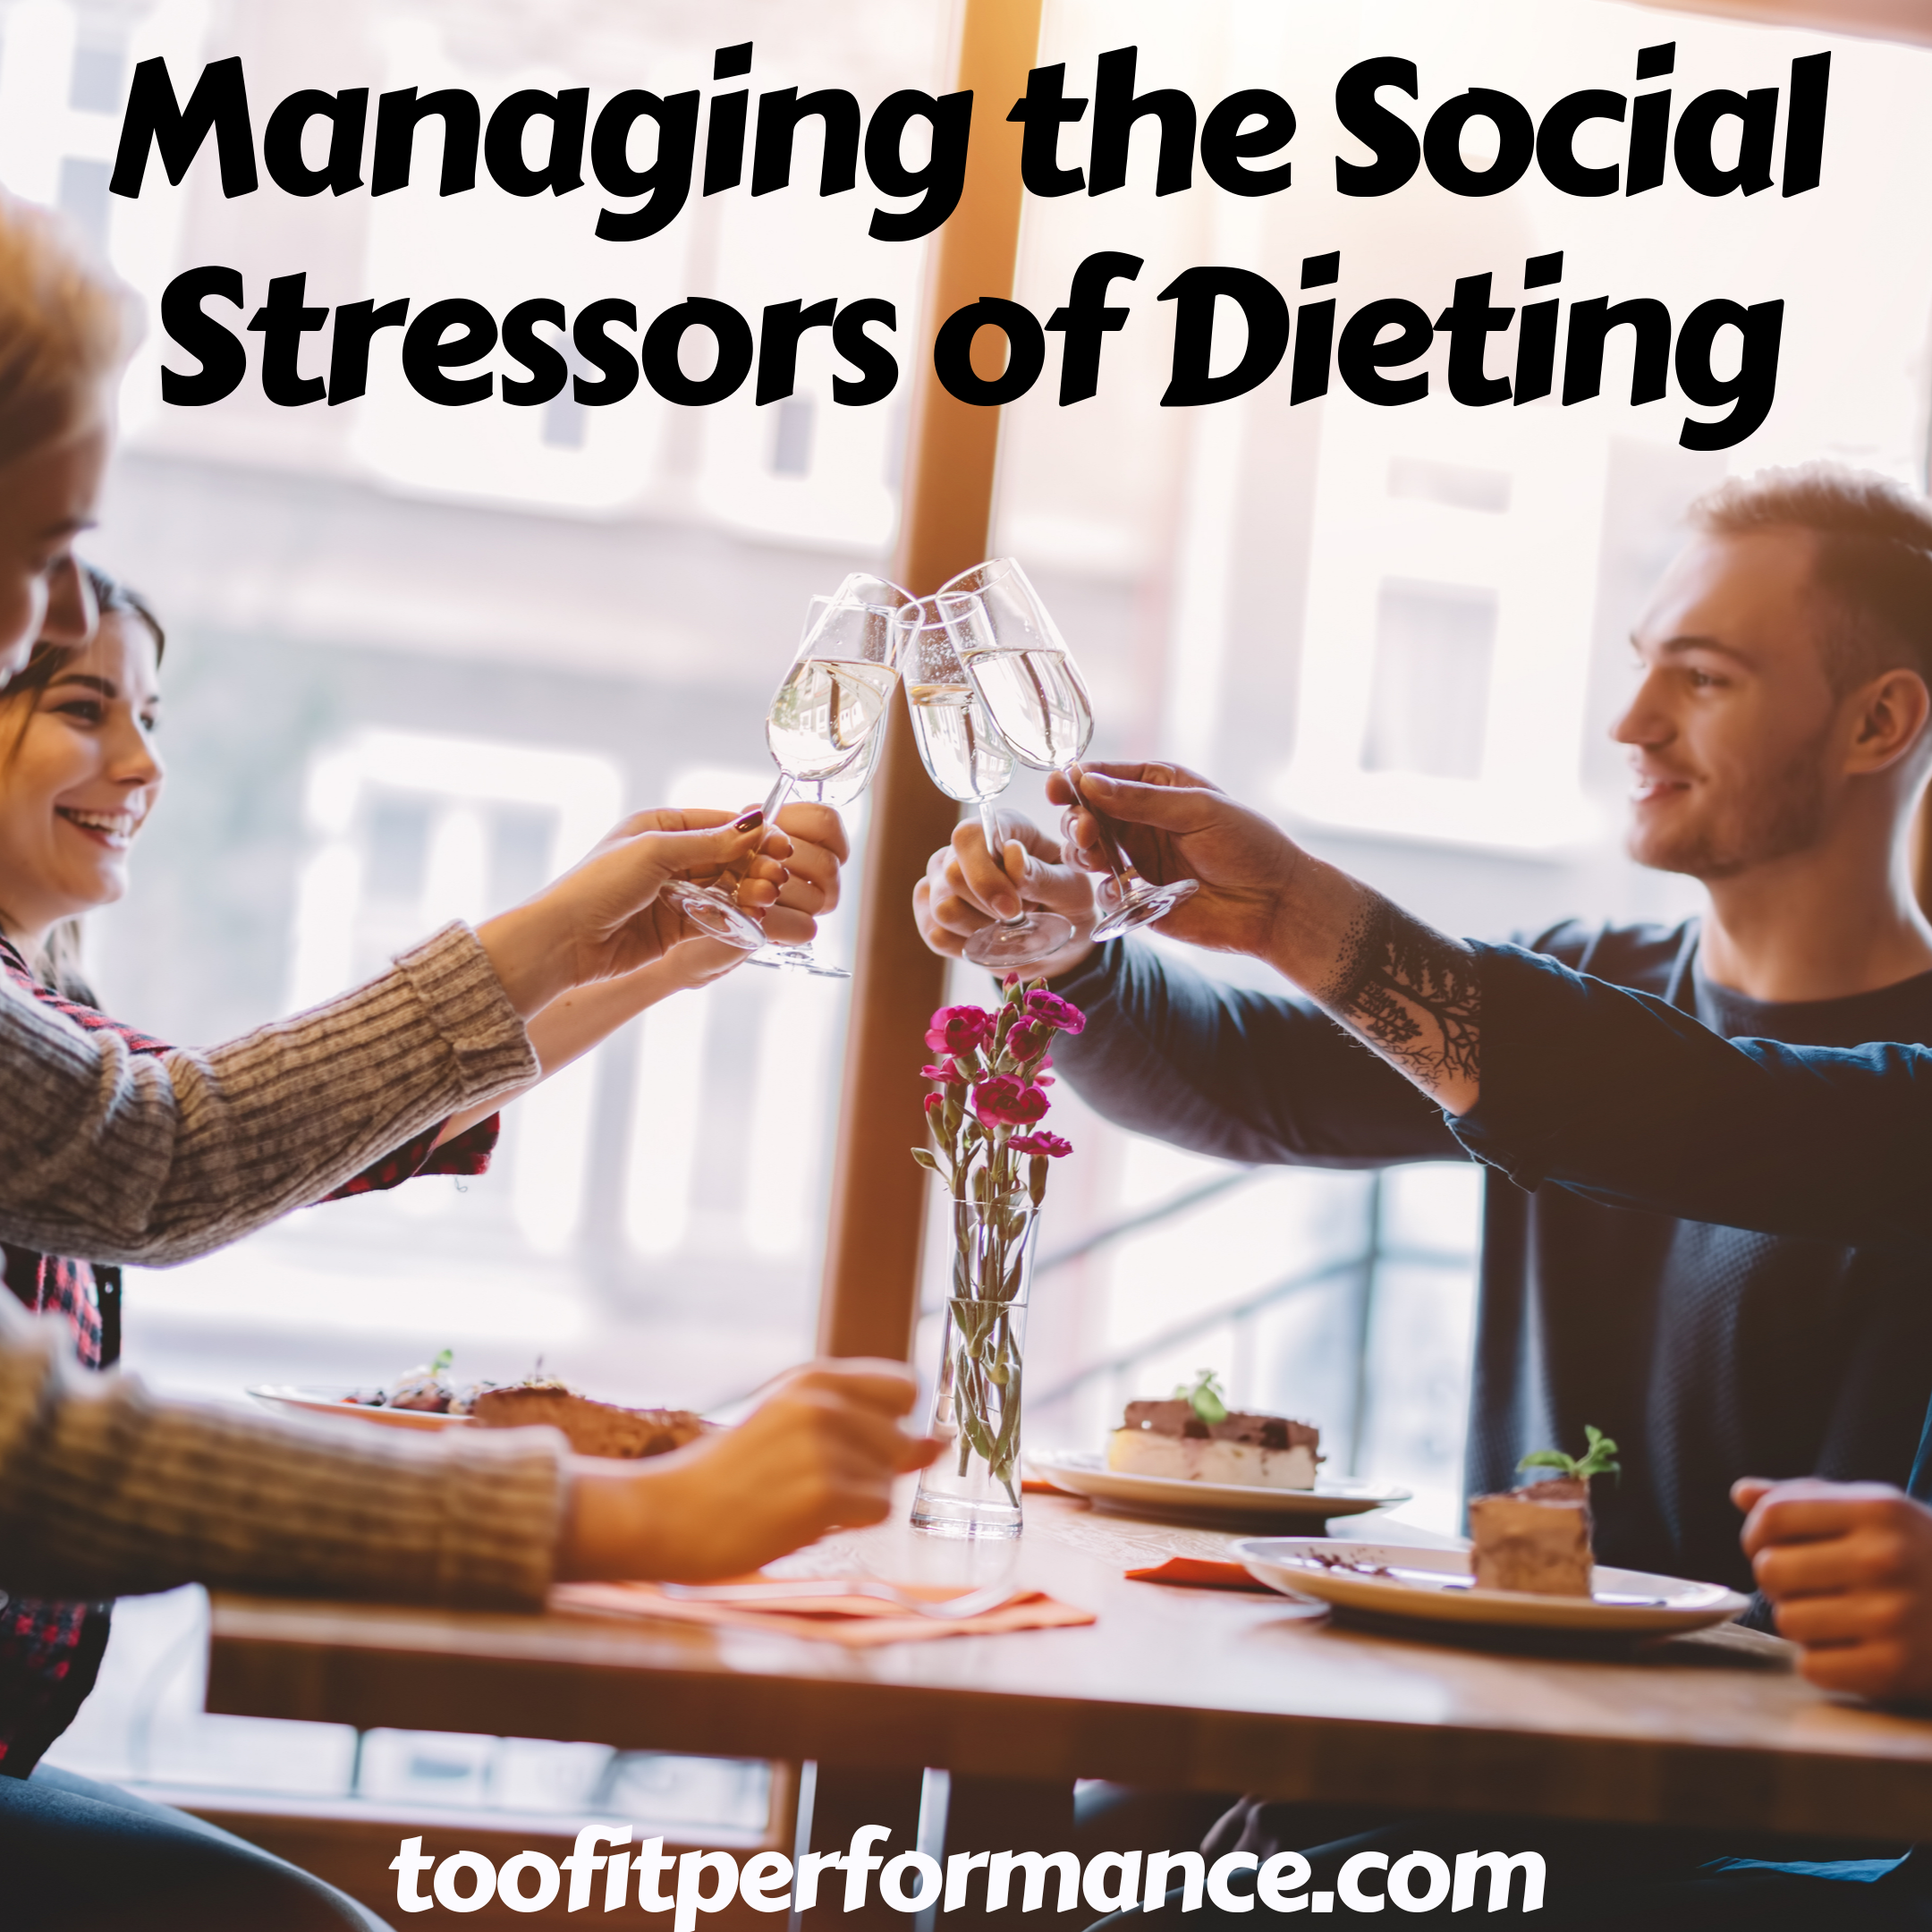 Managing the Social Stressors of Dieting